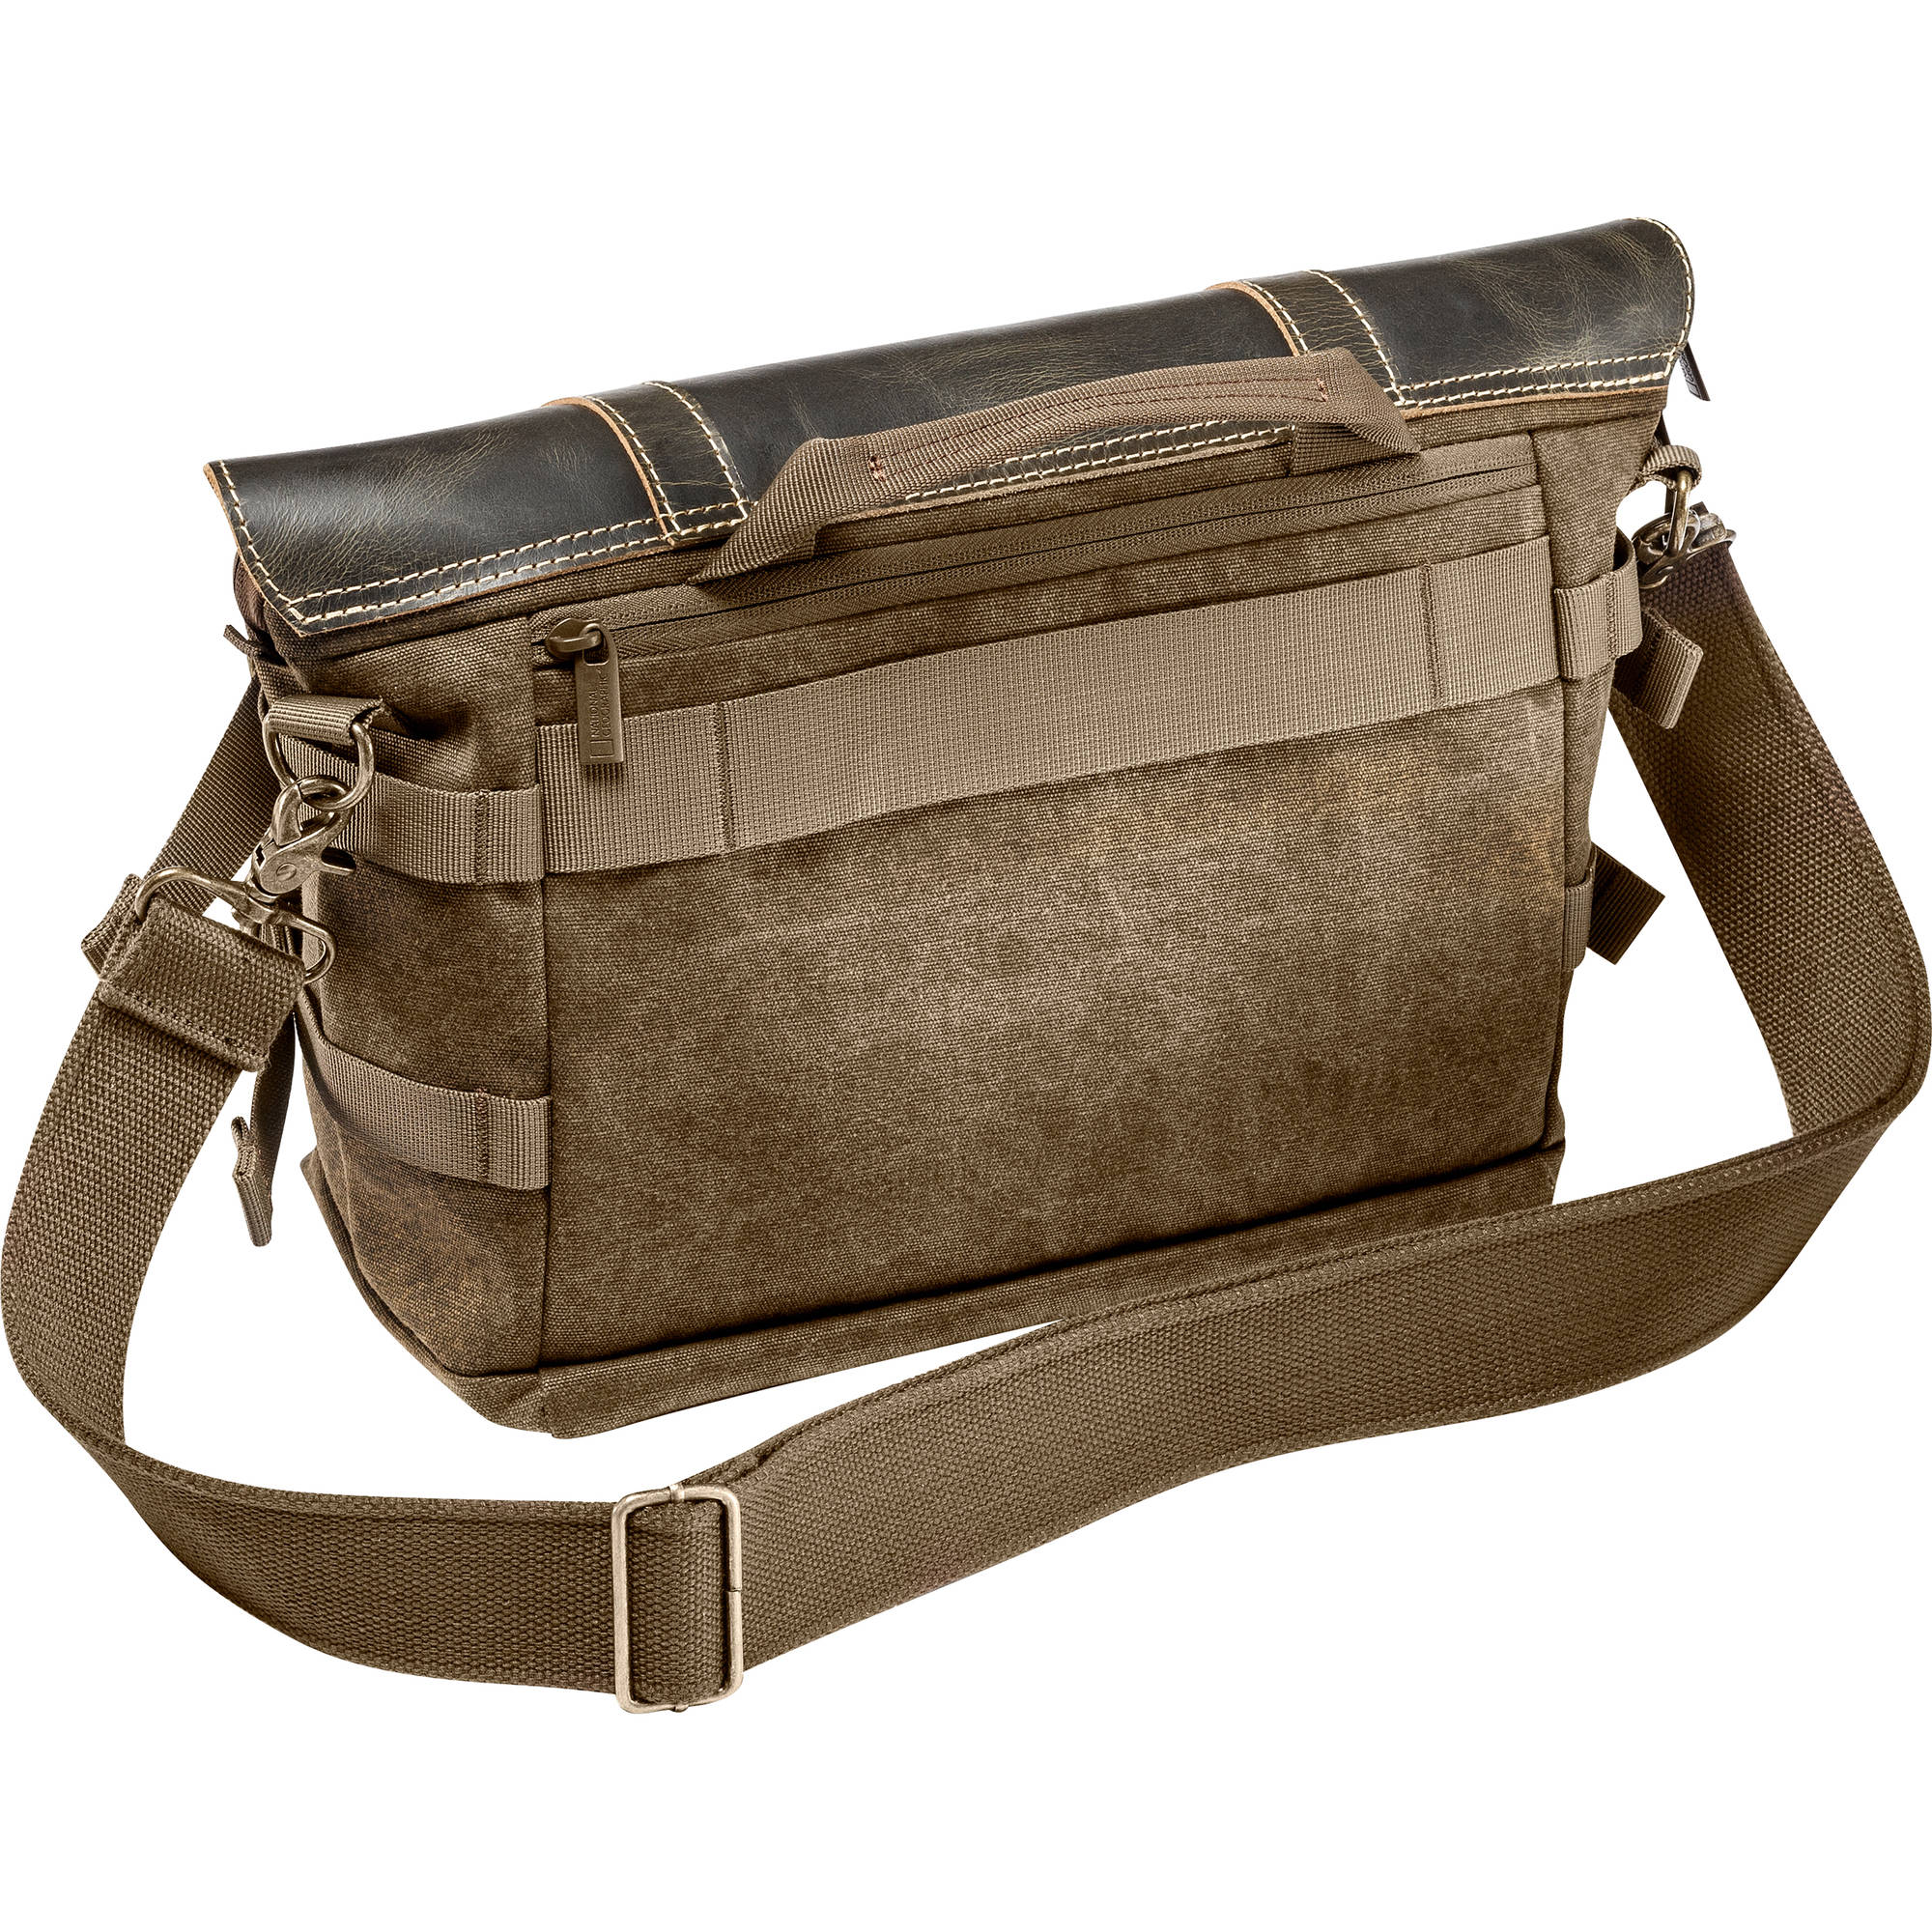 National Geographic Africa Camera Satchel S for DSLR/CSC (Brown)